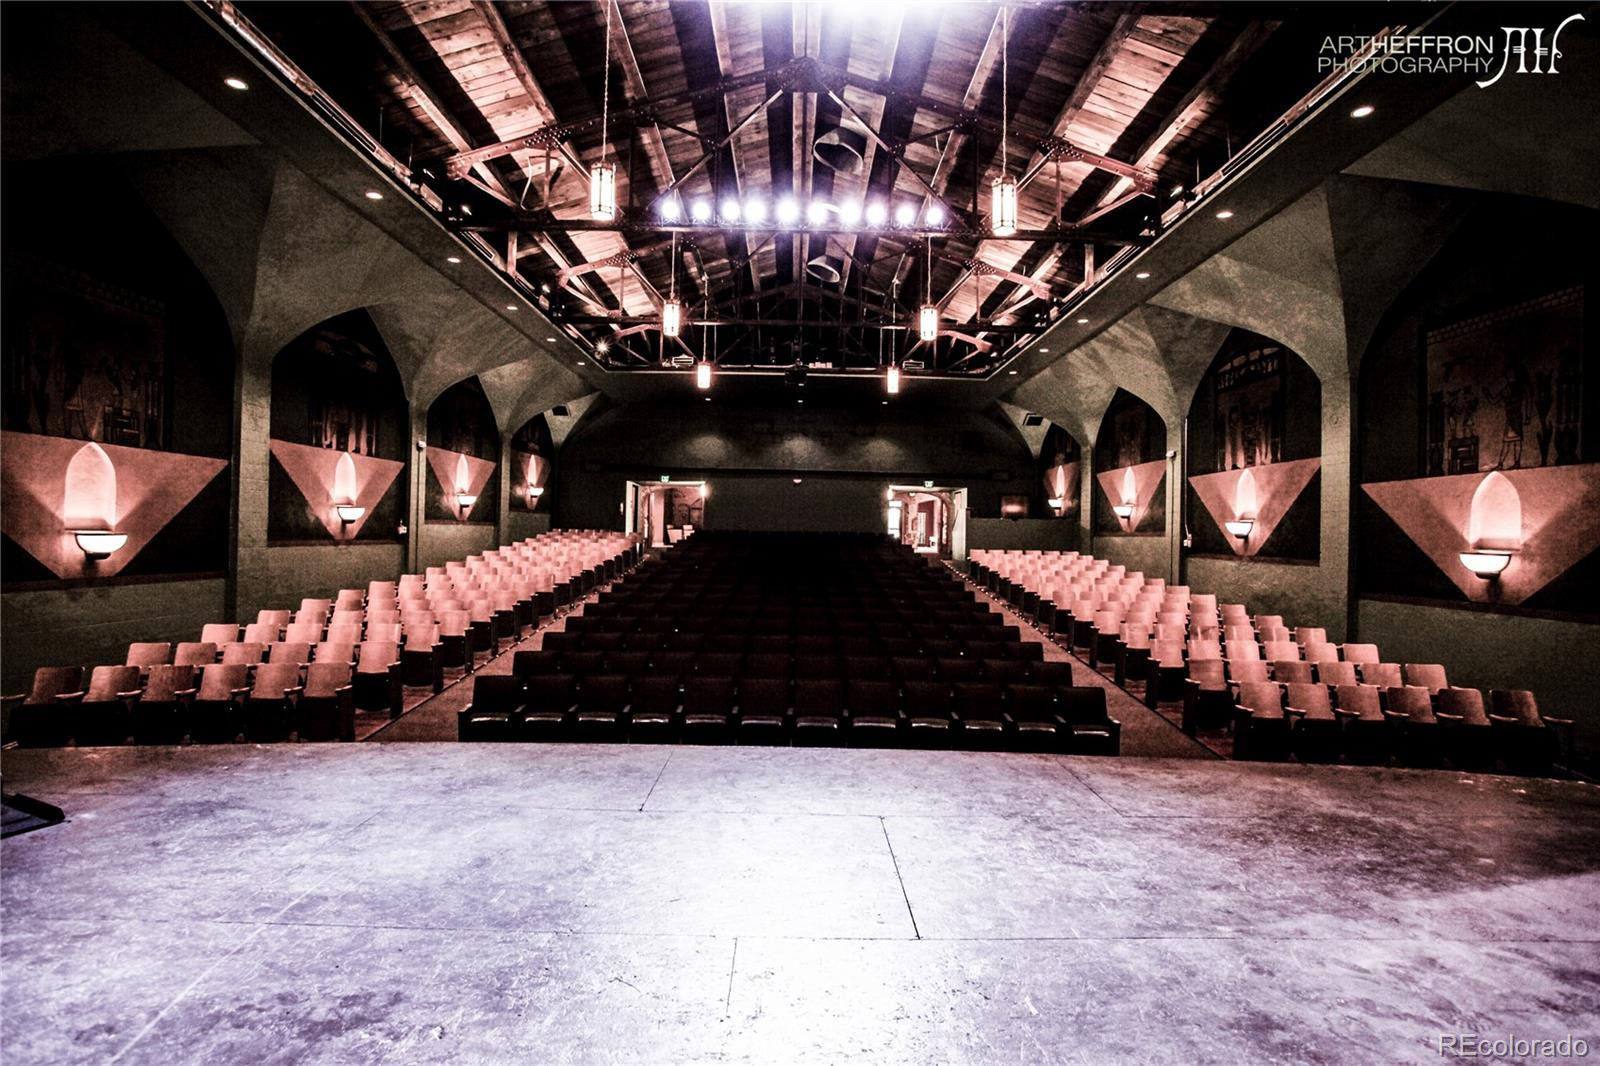 Have you ever thought about living in an Historic Theater?  If so, this is the one!  Nestled in the heart of Highland, on one of the most prominent corners in the neighborhood is this historic gem.  The Holiday Theater!  The theater has a footprint of over 6,300sf with up to 30' ceilings. The potential is endless!  This mixed-use building with both retail and residential units currently generates $280,000 in gross revenue per year.  Built in 1914 as a mixed-use building, this iconic gathering place includes 15 residential units, 1 retail unit, 2 office units and the beautifully appointed classic theater. It was originally called the Egyptian theater then later renamed the Holiday, it exemplifies all of the drama of the theaters of that era with a tasteful facelift 8 years ago. The property has been meticulously maintained over the years and has several original appointments. The 5,000+sf theater and two retail units are the perfect adaptive re-use opportunity for your creativity to run wild.  The building is currently fully leased (except for the theater) and has had several upgrades throughout the years.  The property is not a contributing structure in the Potter Highland Historic District and has no historic status at this point.